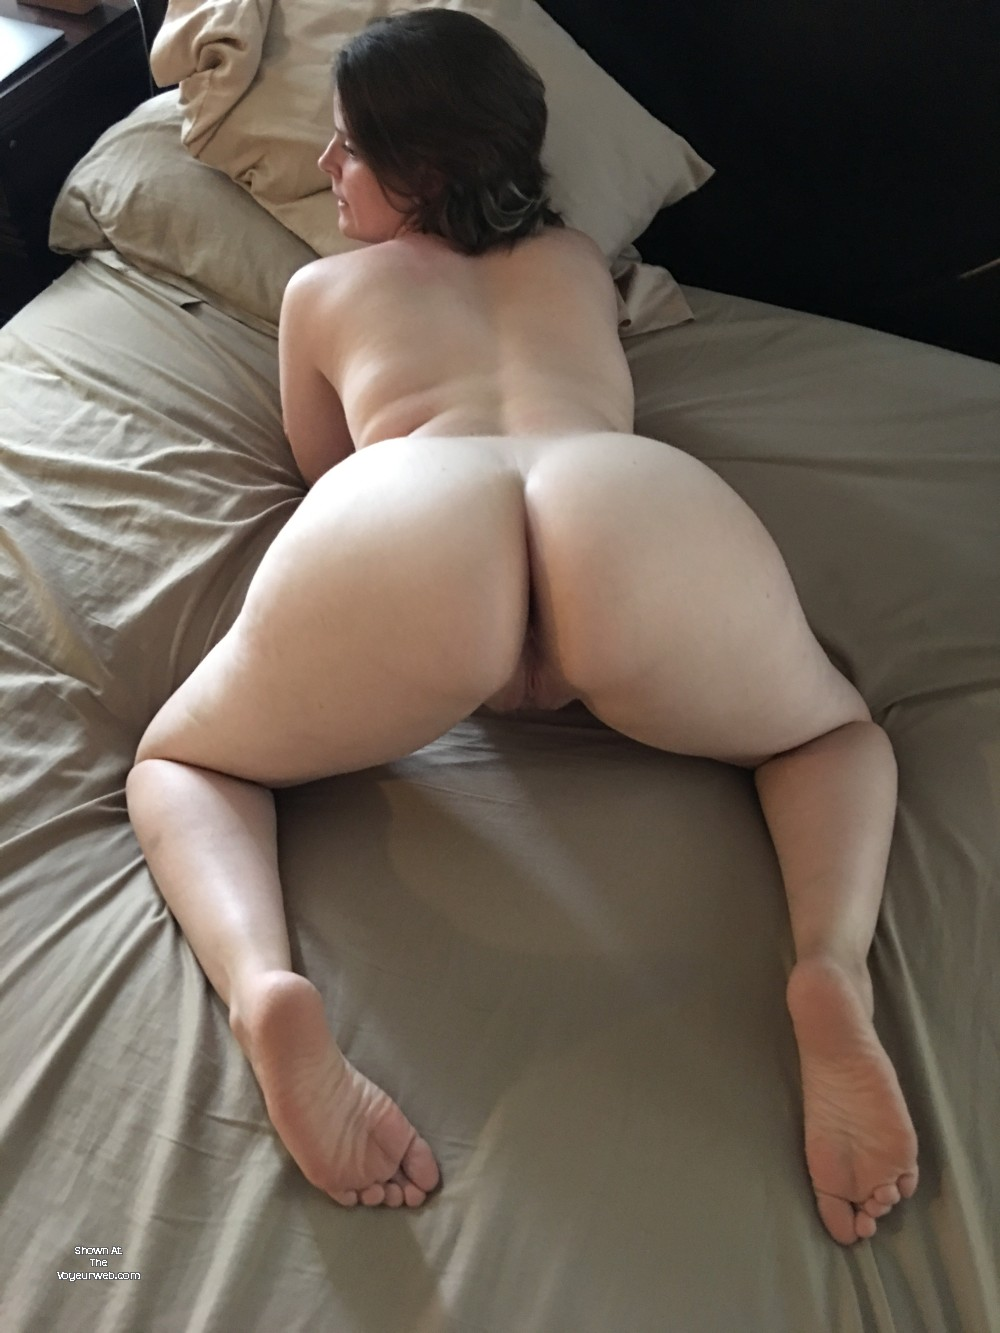 My wife naked ass pictures